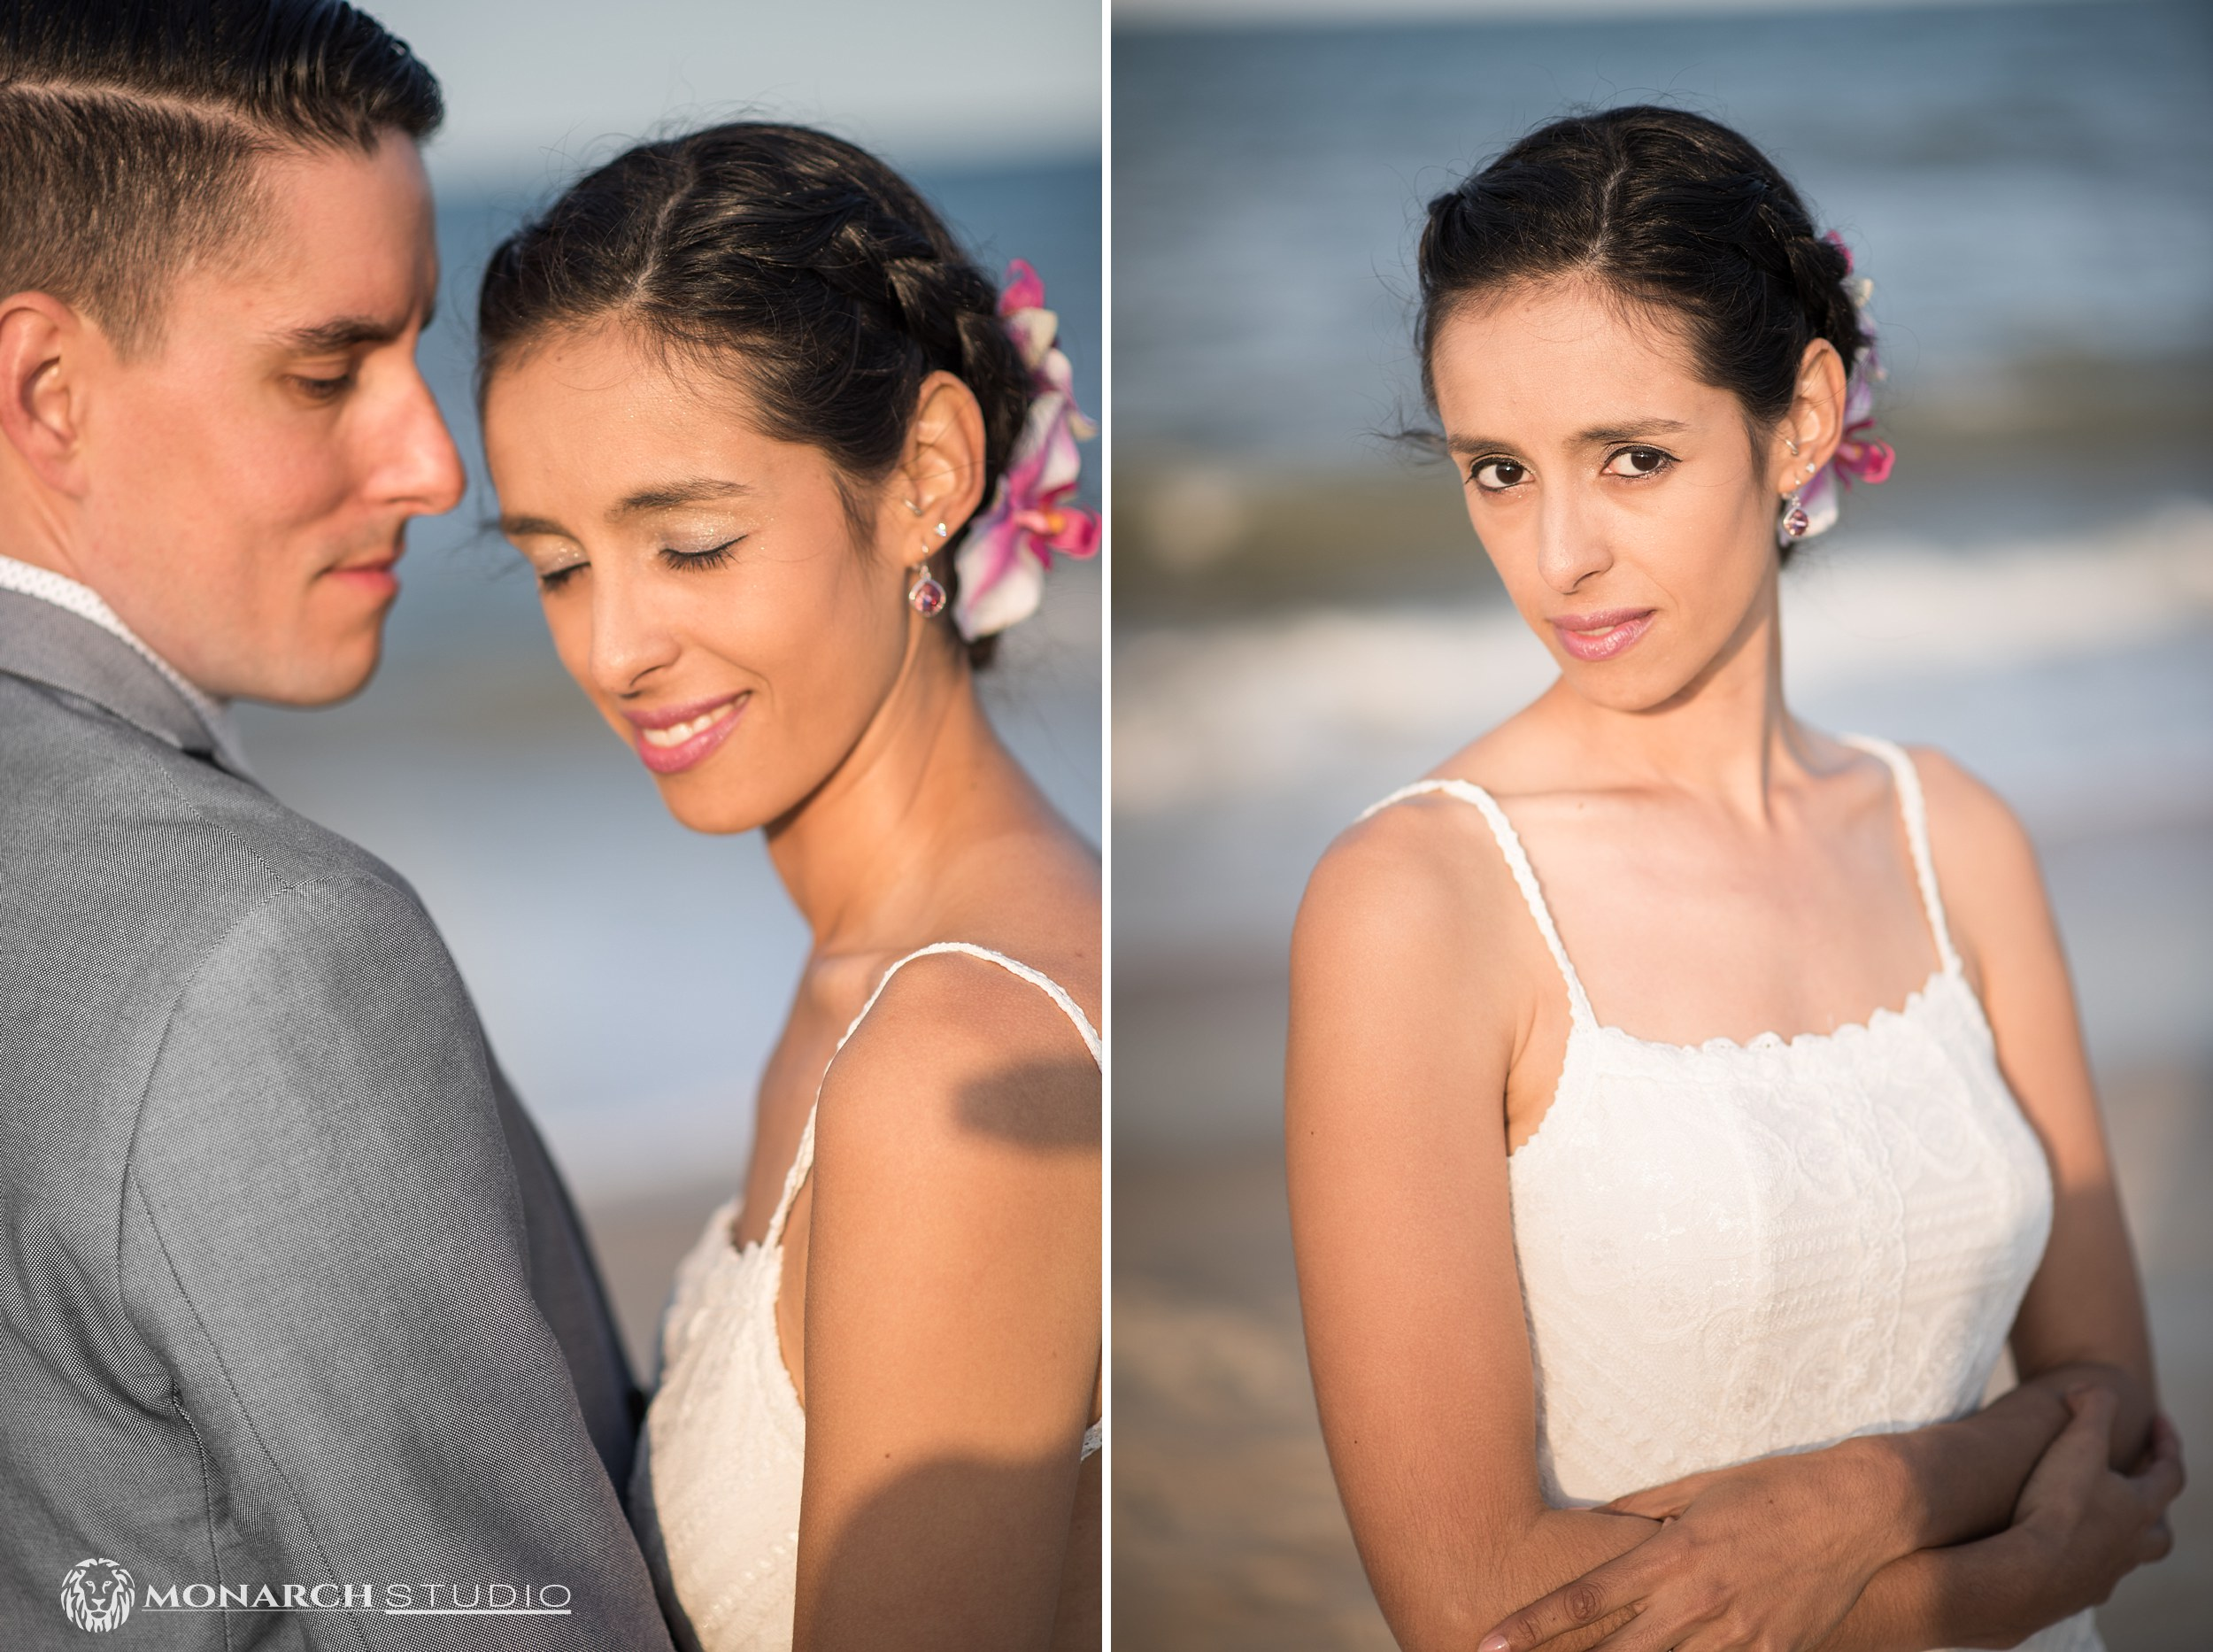 St-Augustine-Elopement-Wedding-Photographer_0023.jpg